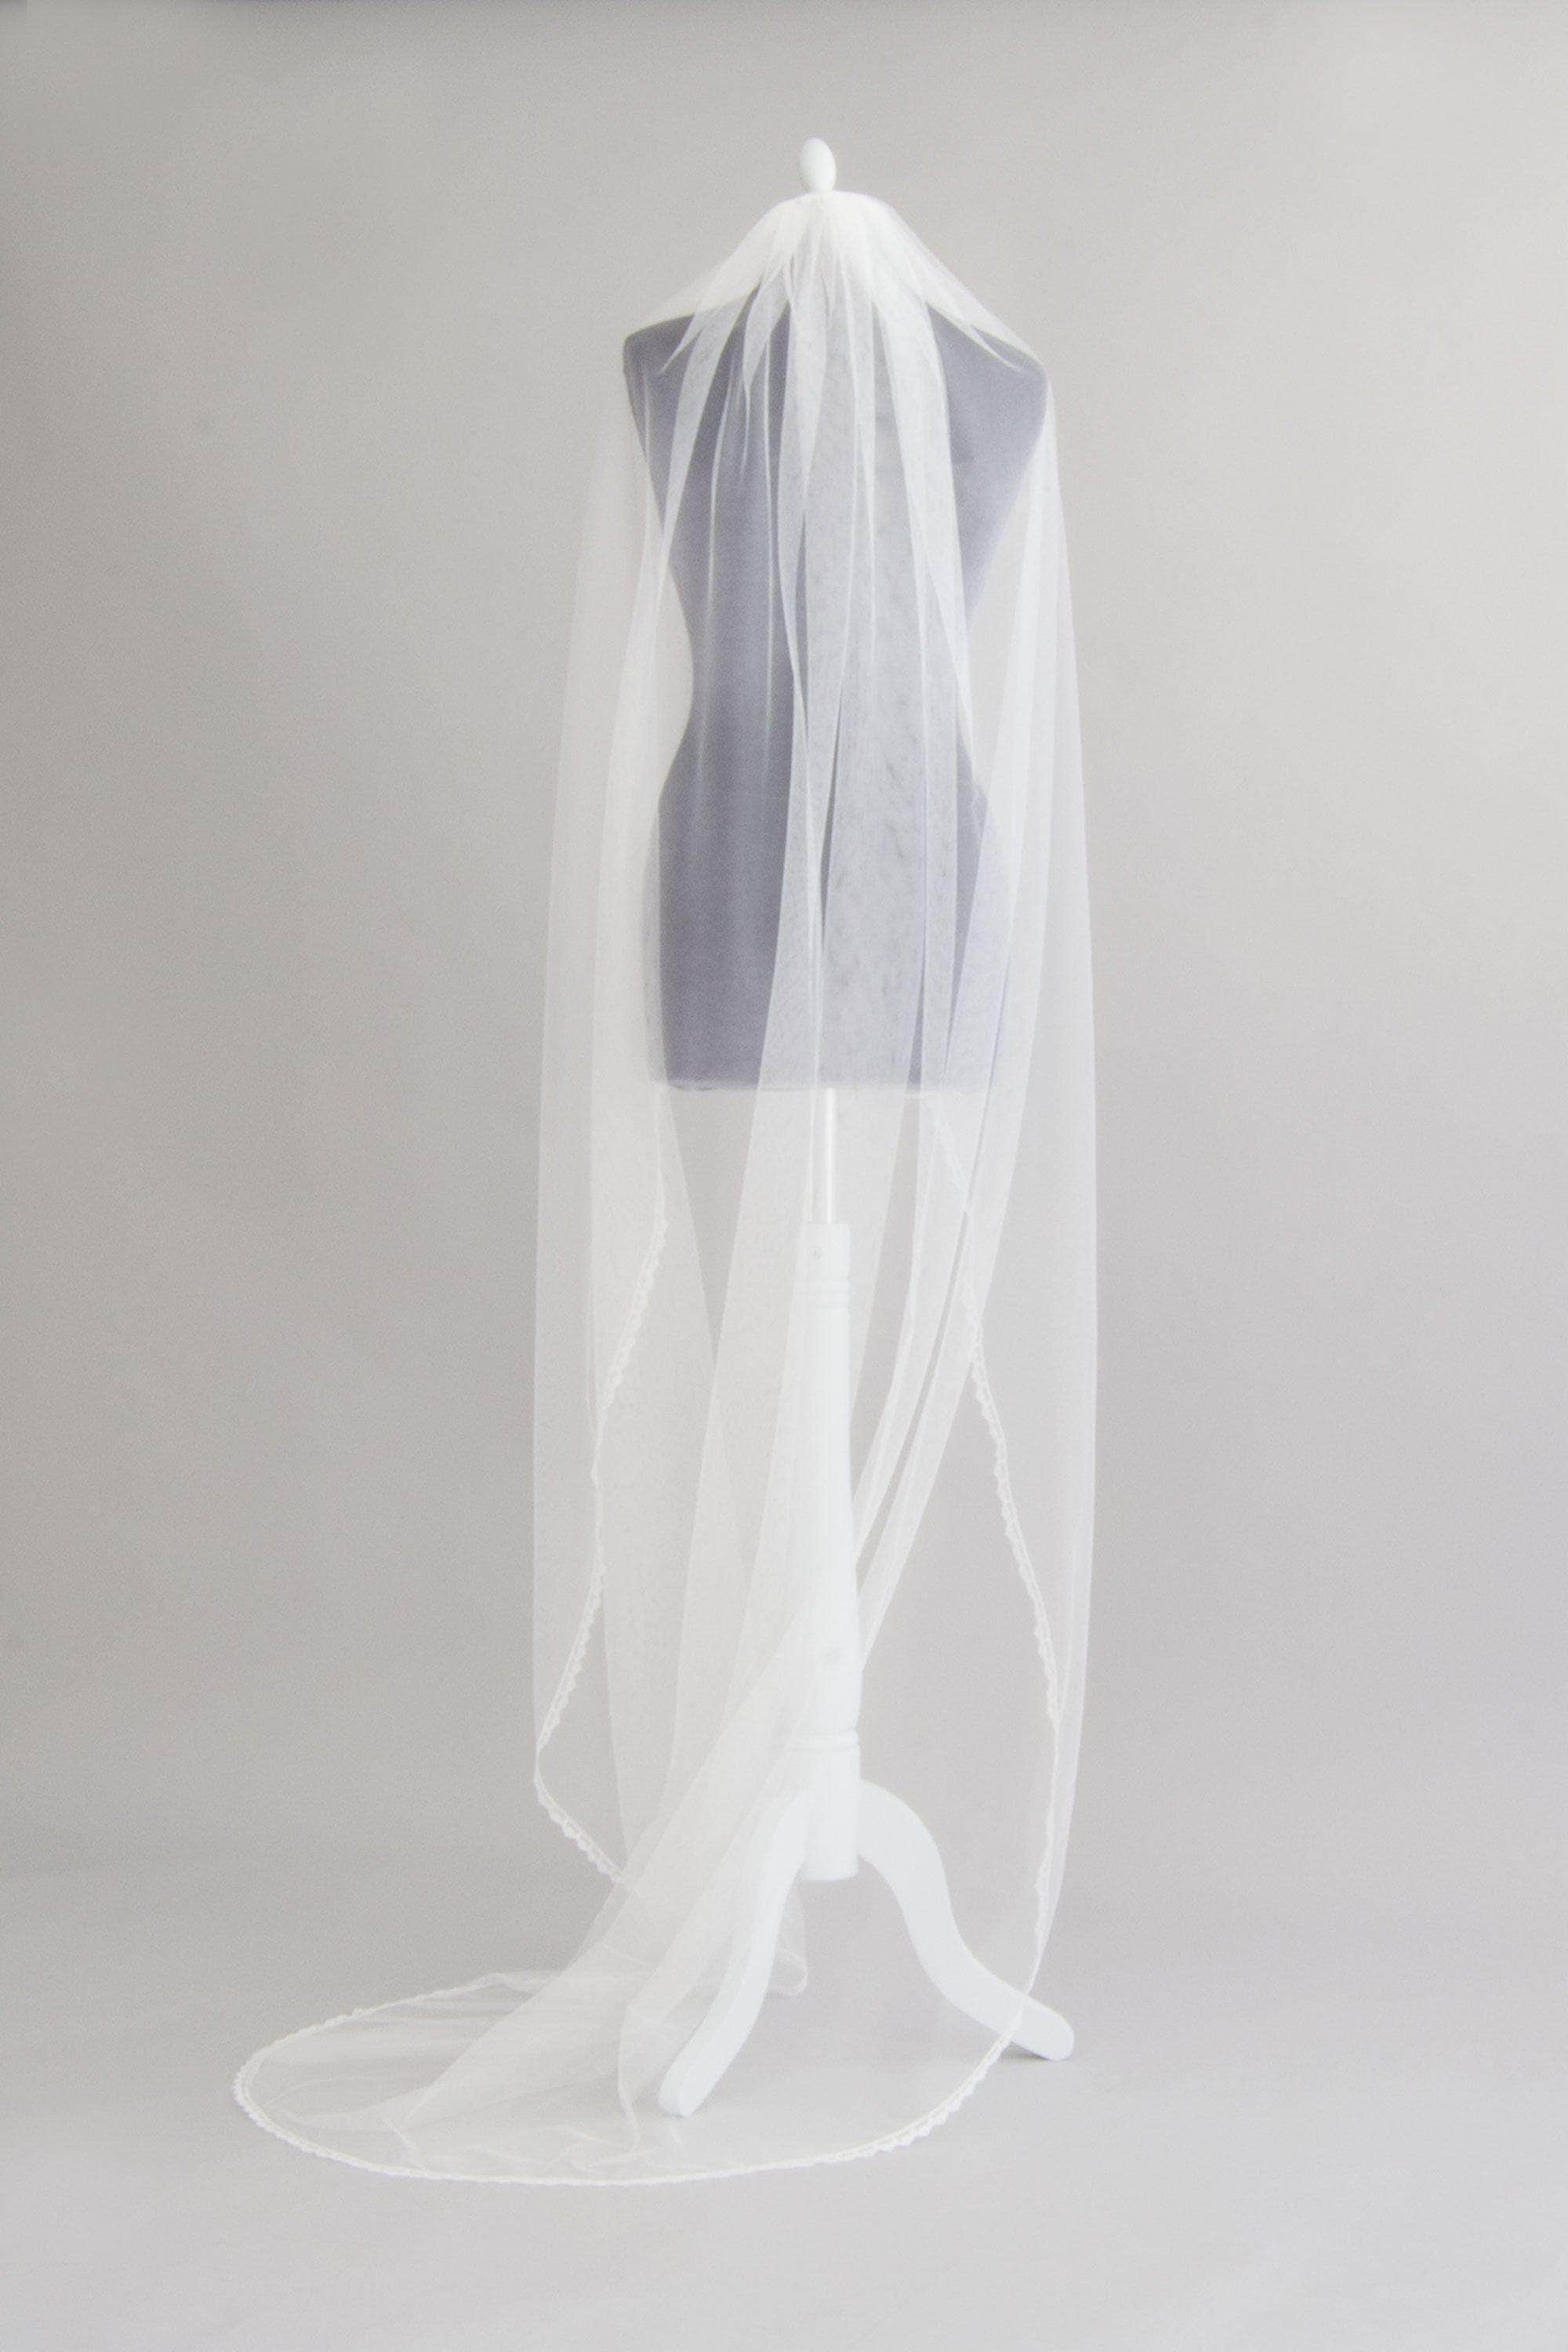 silk style wedding veil with delicate lace edge